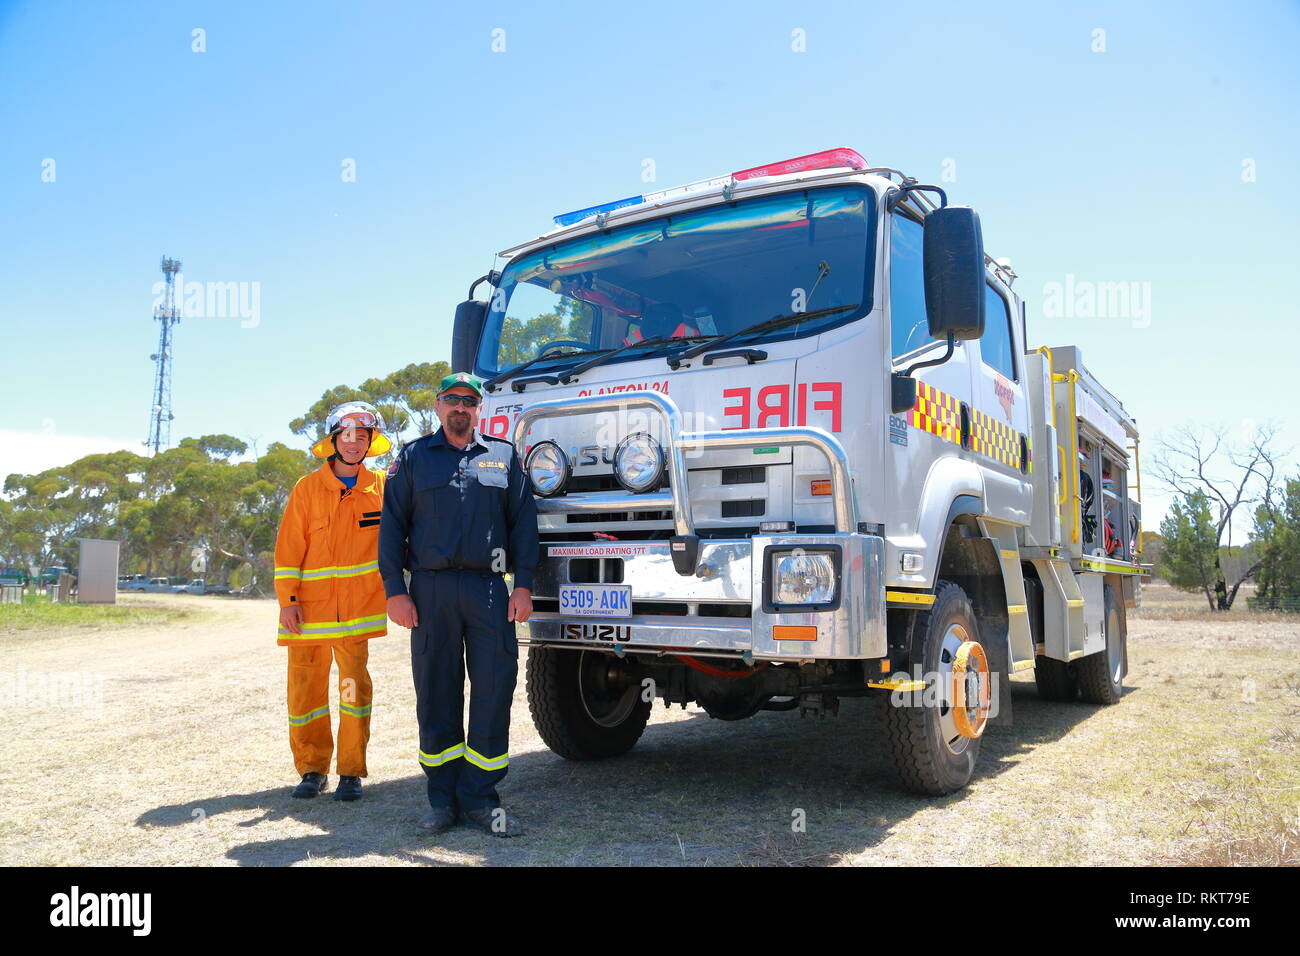 Two Firemen pose in front of their fire engine in Milang, South Australia at the Power Rally at Port Milang, South Australia - Stock Image